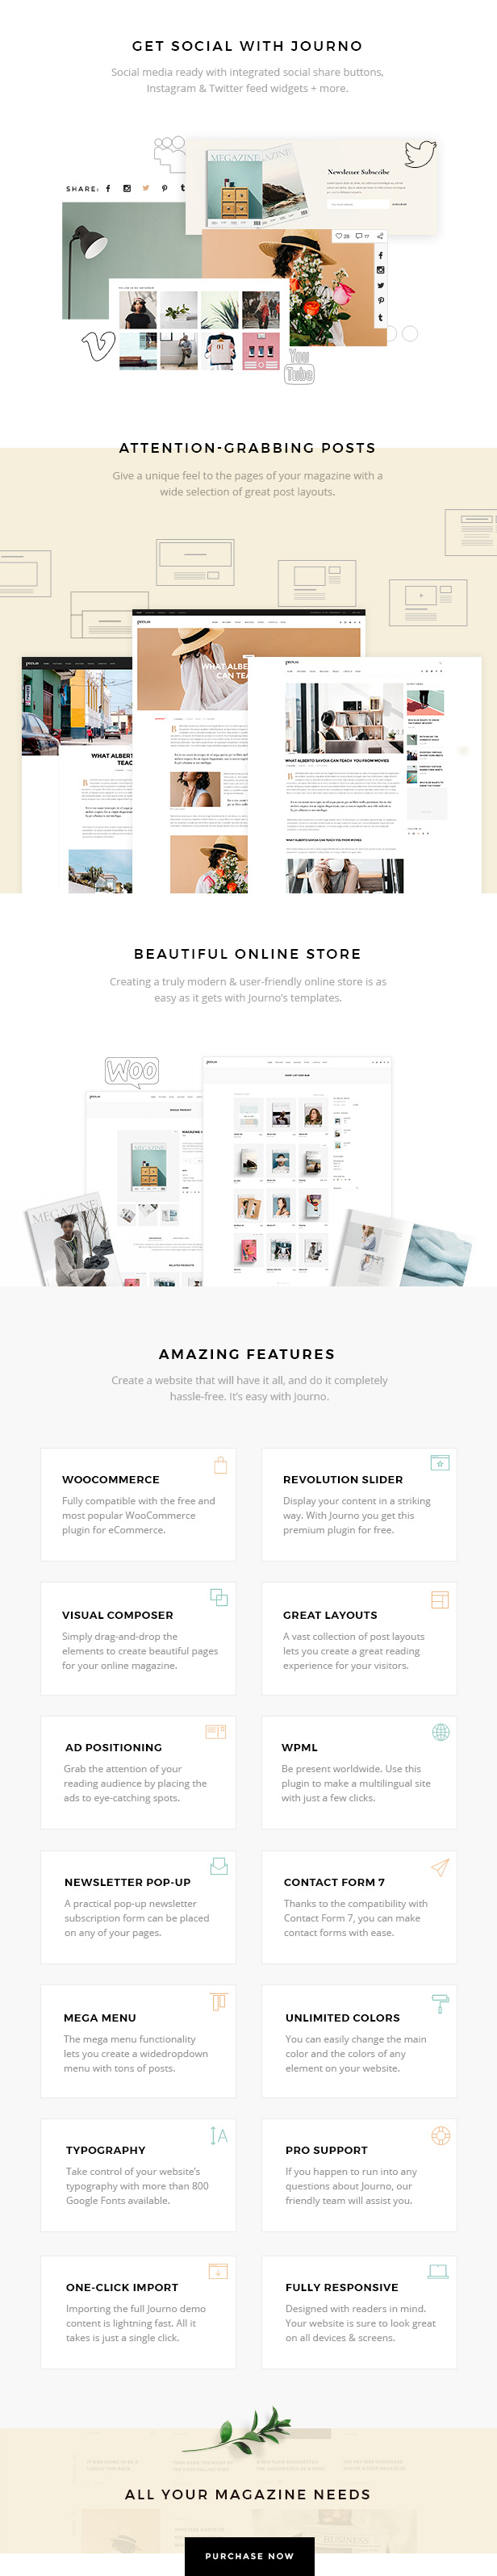 journo - a creative magazine and blog theme (news / editorial) Journo – A Creative Magazine and Blog Theme (News / Editorial) 03